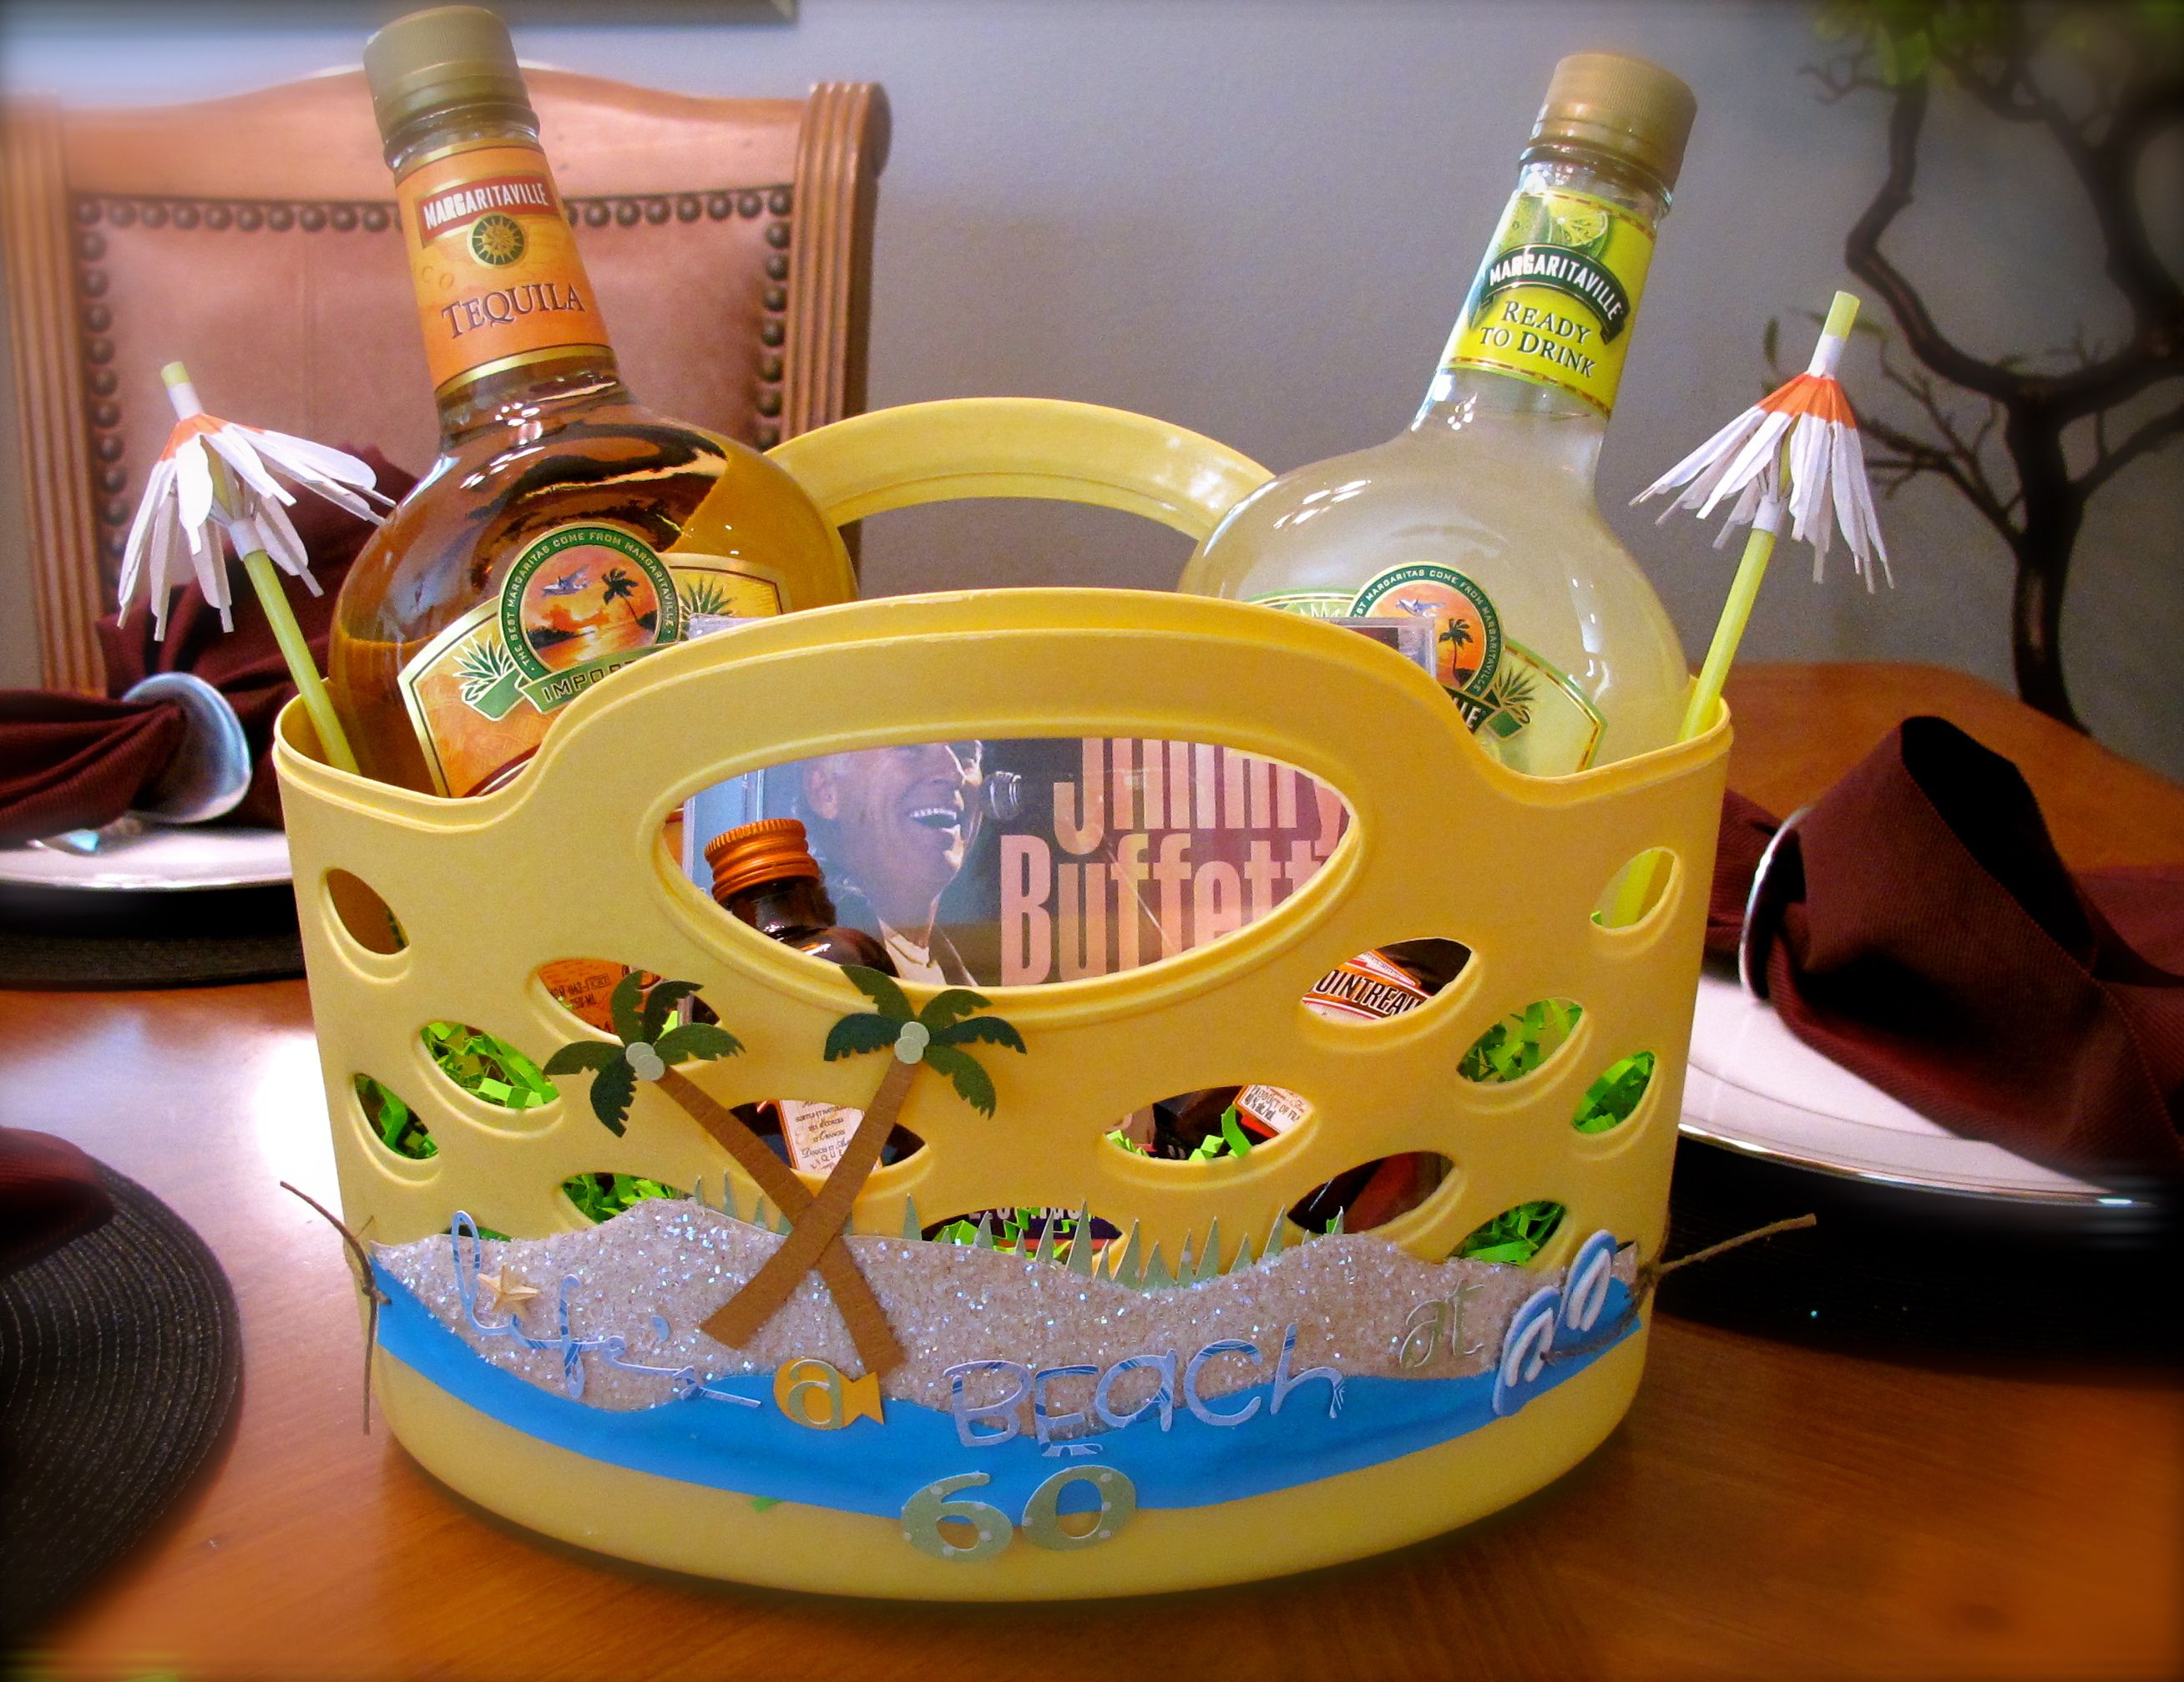 Margaritaville Gift Basket Also Be Cute With Beach Stuff Towels Sunscreen Glasses Etc